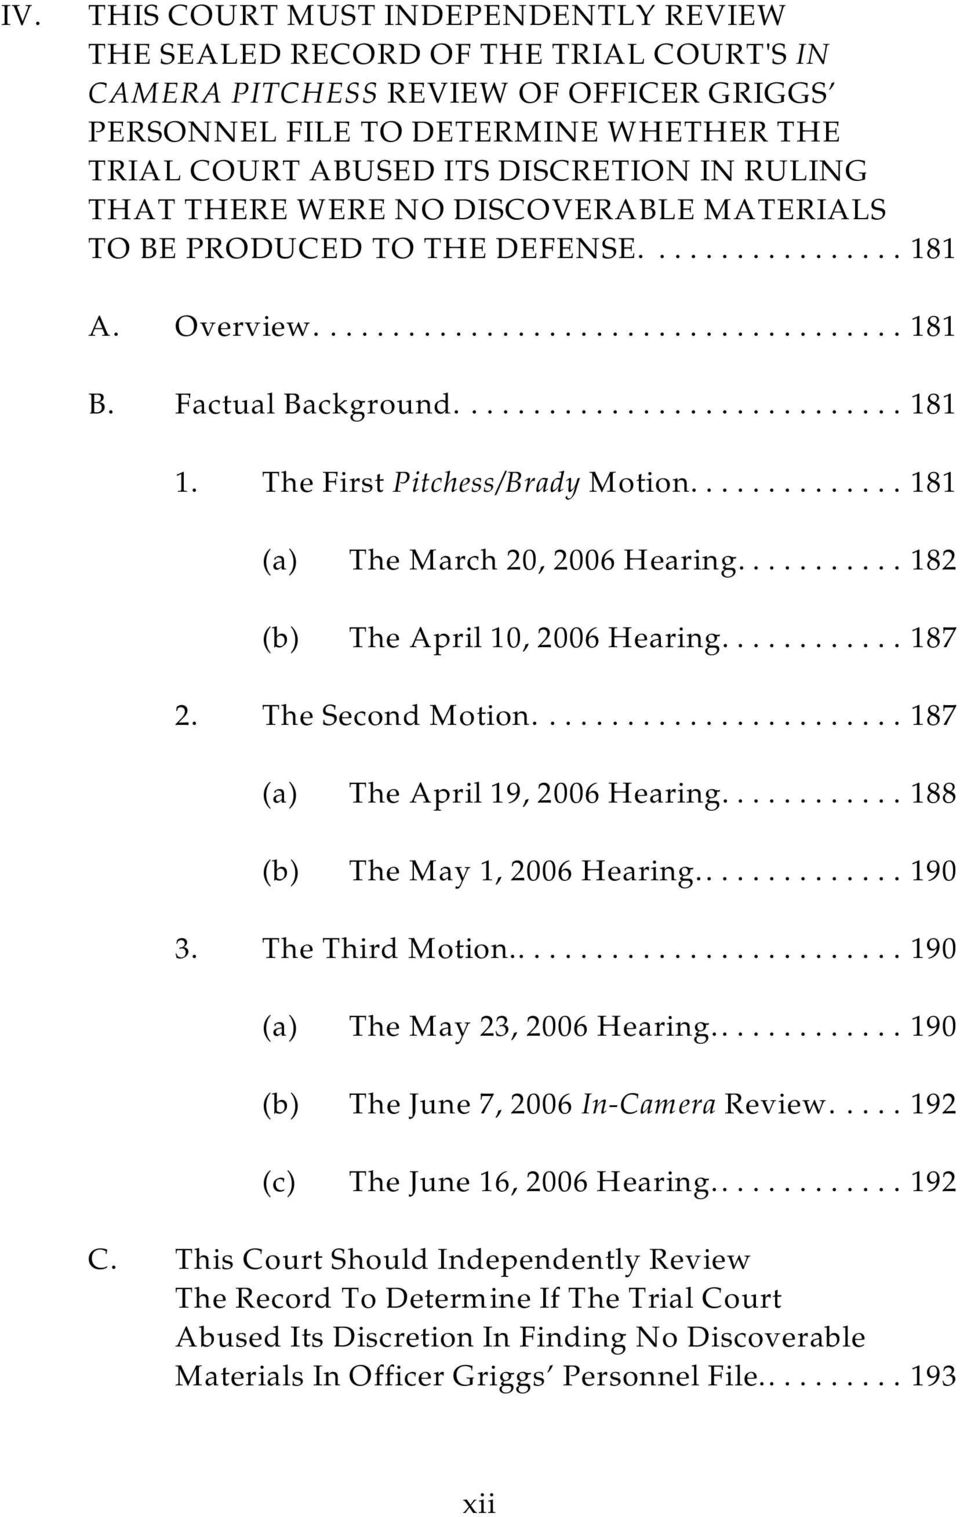 ..181 (a) The March 20, 2006 Hearing........... 182 (b) The April 10, 2006 Hearing............ 187 2. The Second Motion...187 (a) The April 19, 2006 Hearing............ 188 (b) The May 1, 2006 Hearing.